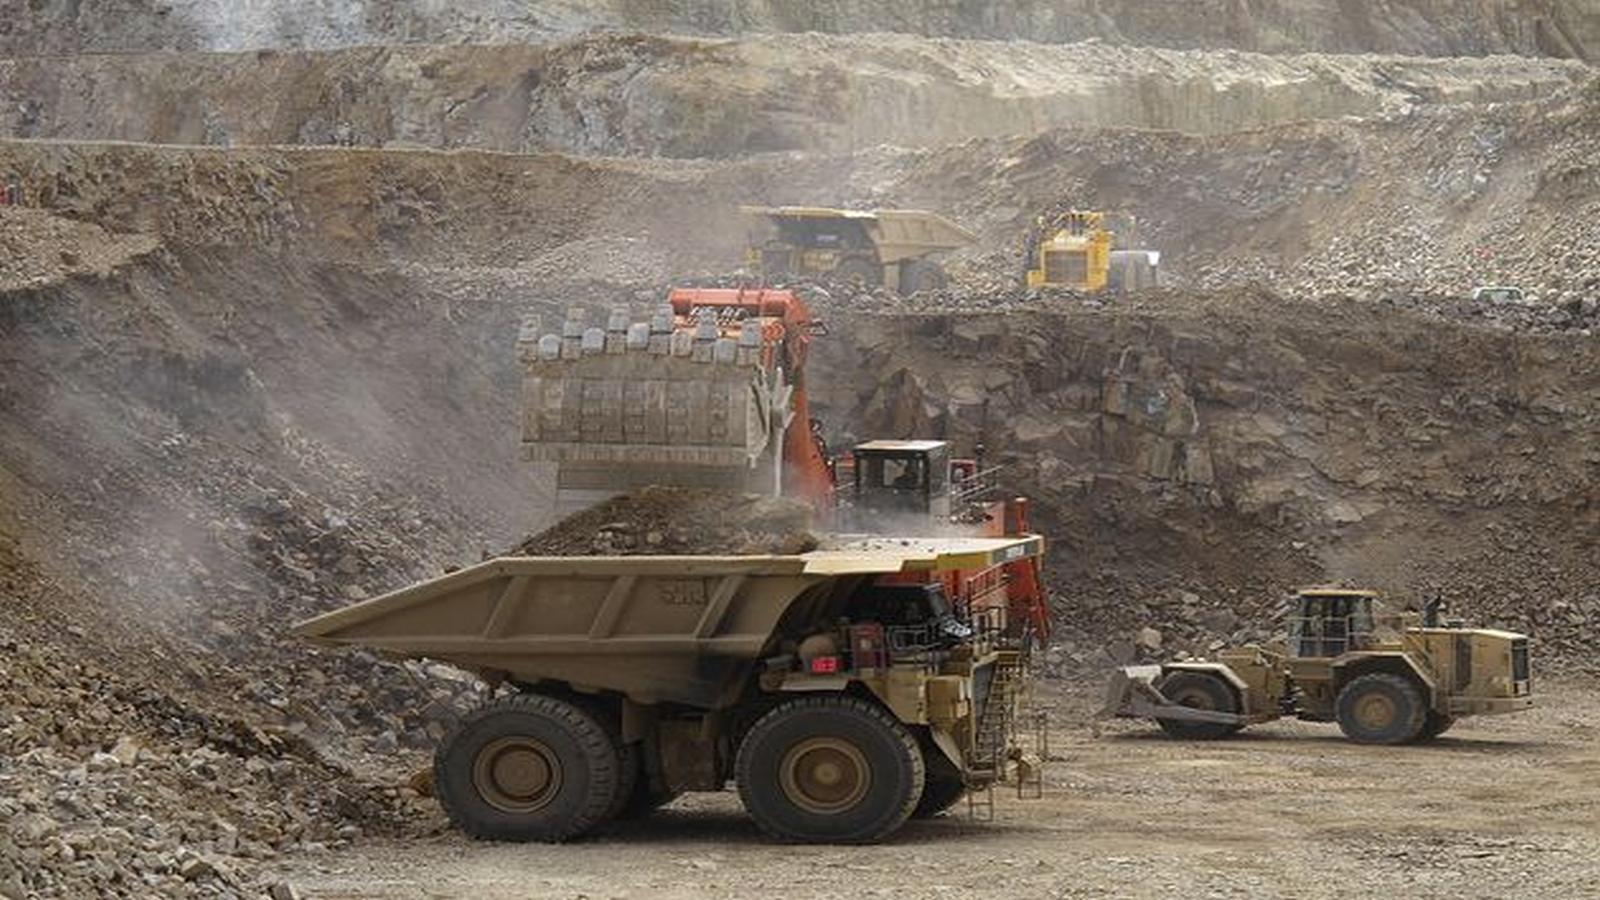 Haul Truck Coal Mining Operator Multiple sites Bowen Basin